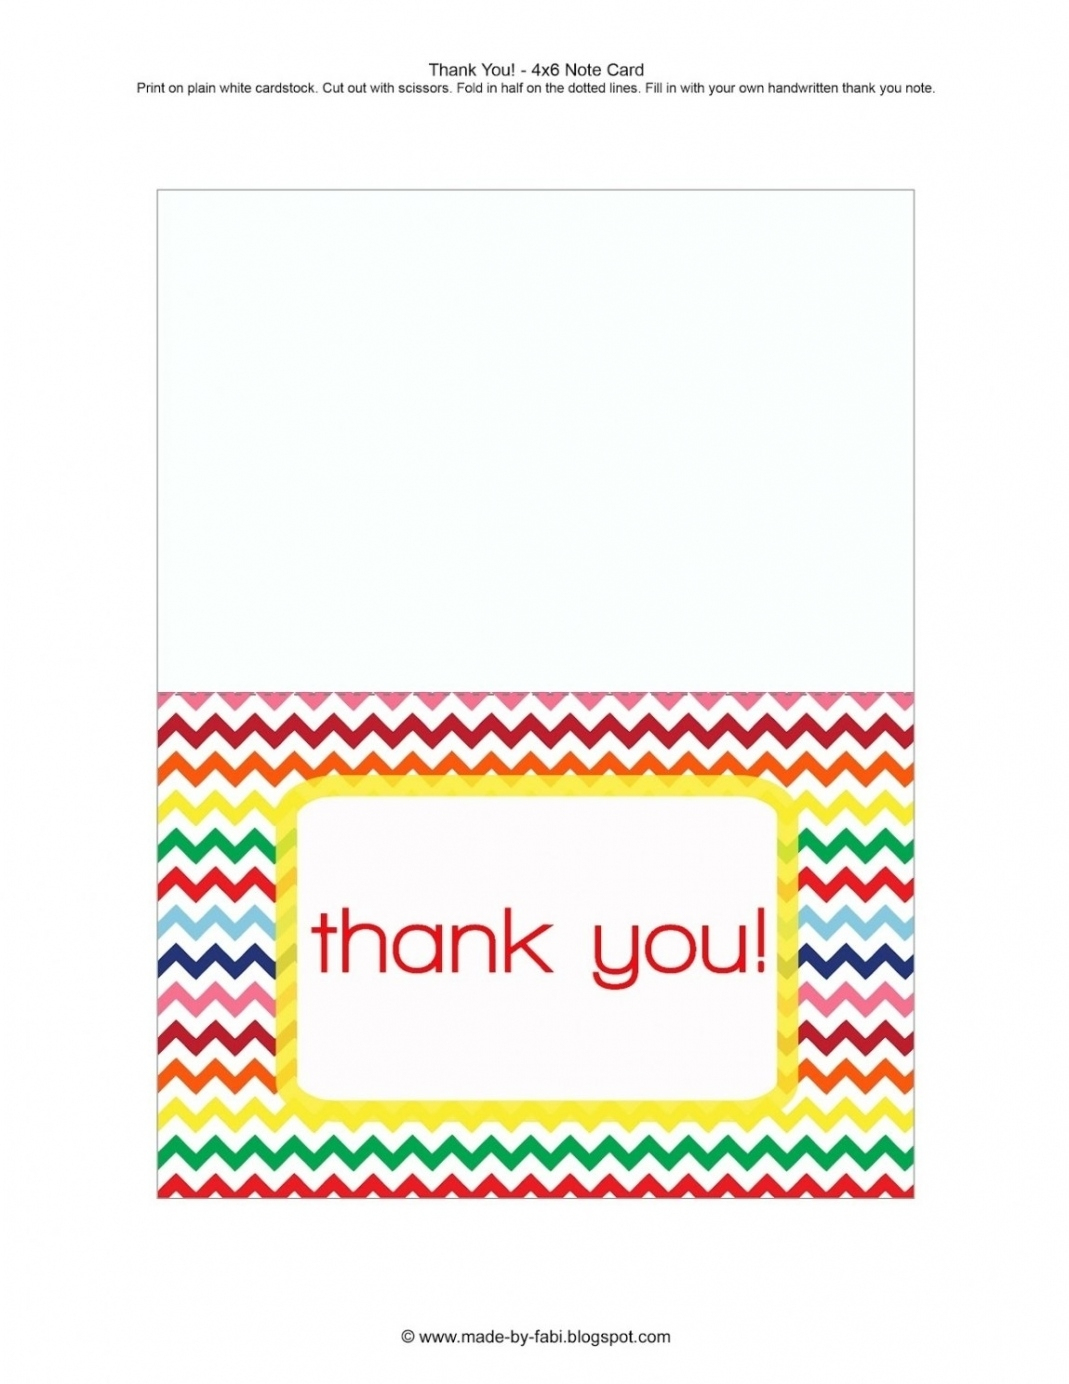 008 Template Ideas Thank You Card Word Free Printable Penaime - Thank You Card Free Printable Template